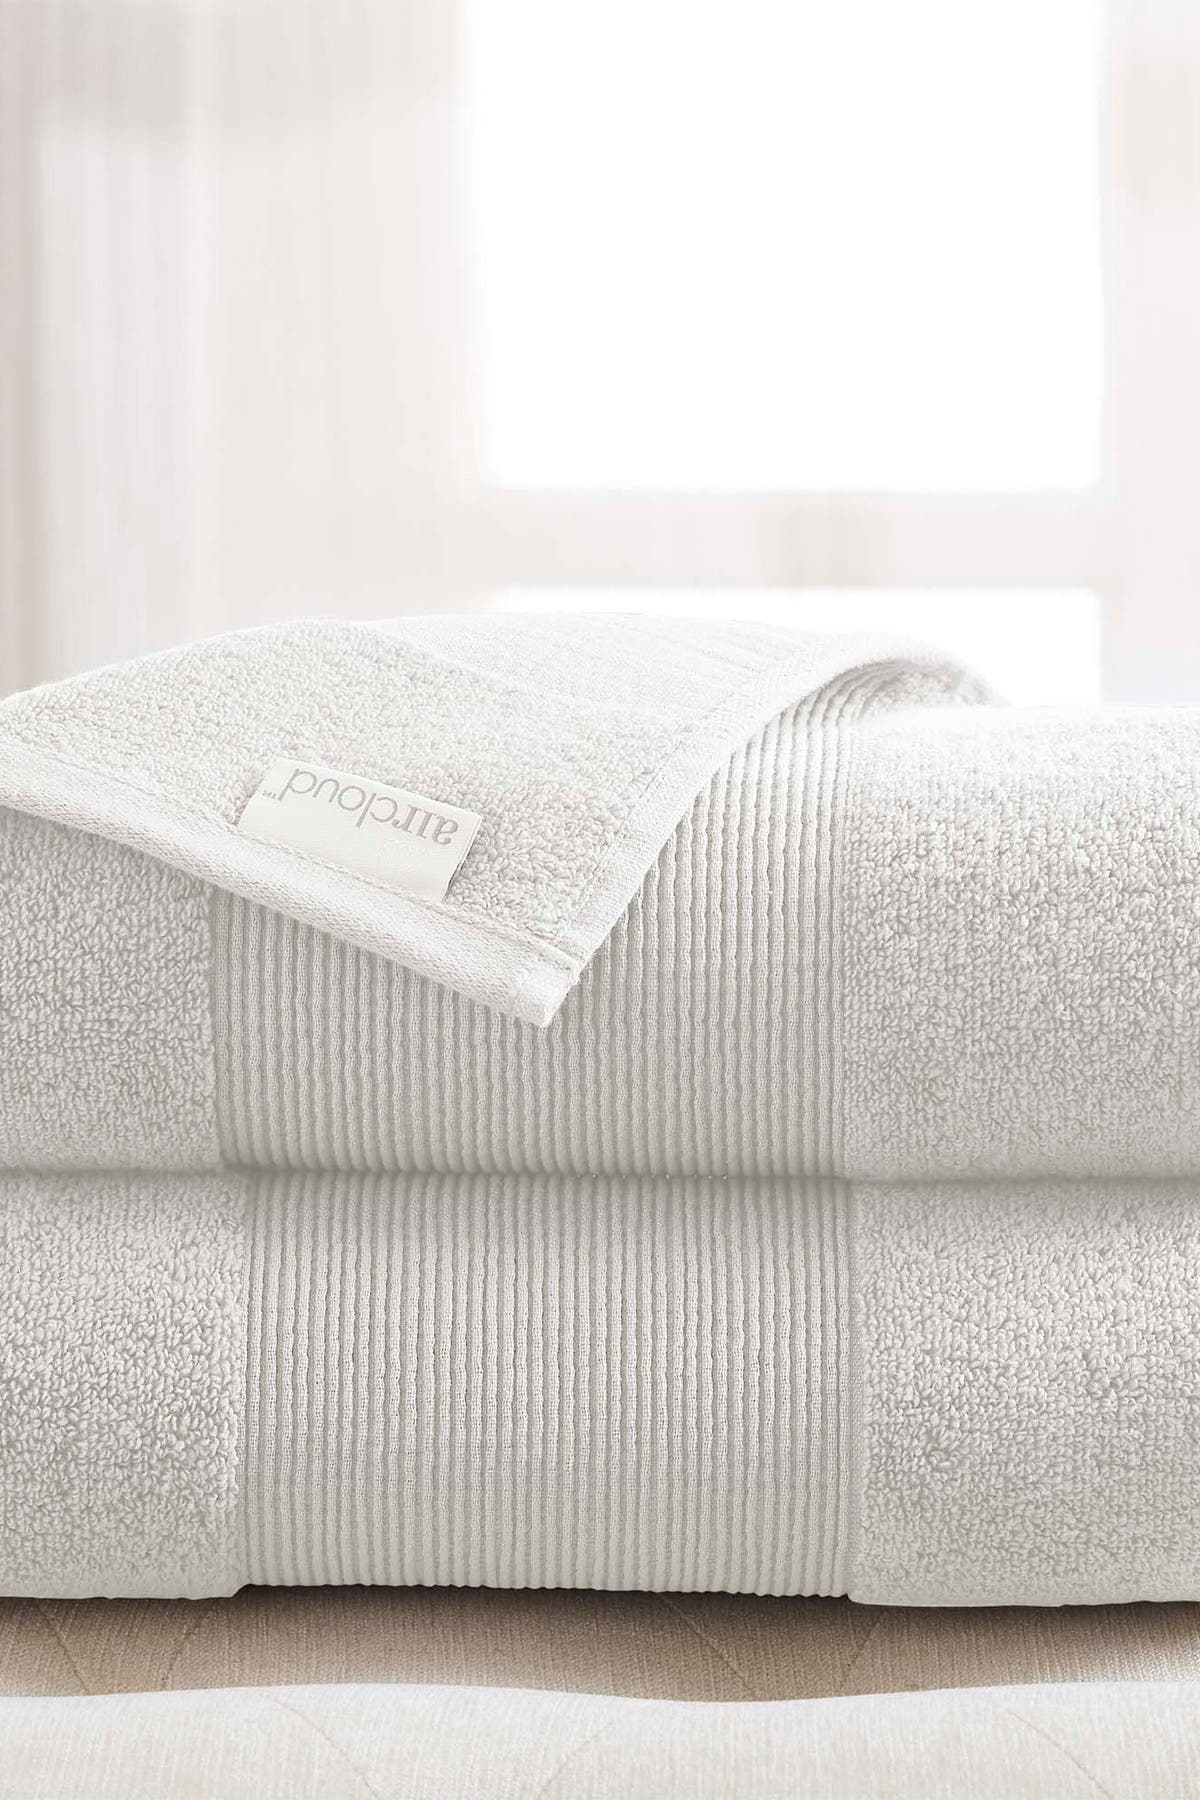 Image of Modern Threads Air Cloud Oversized Bath Sheet - Set of 2 - White